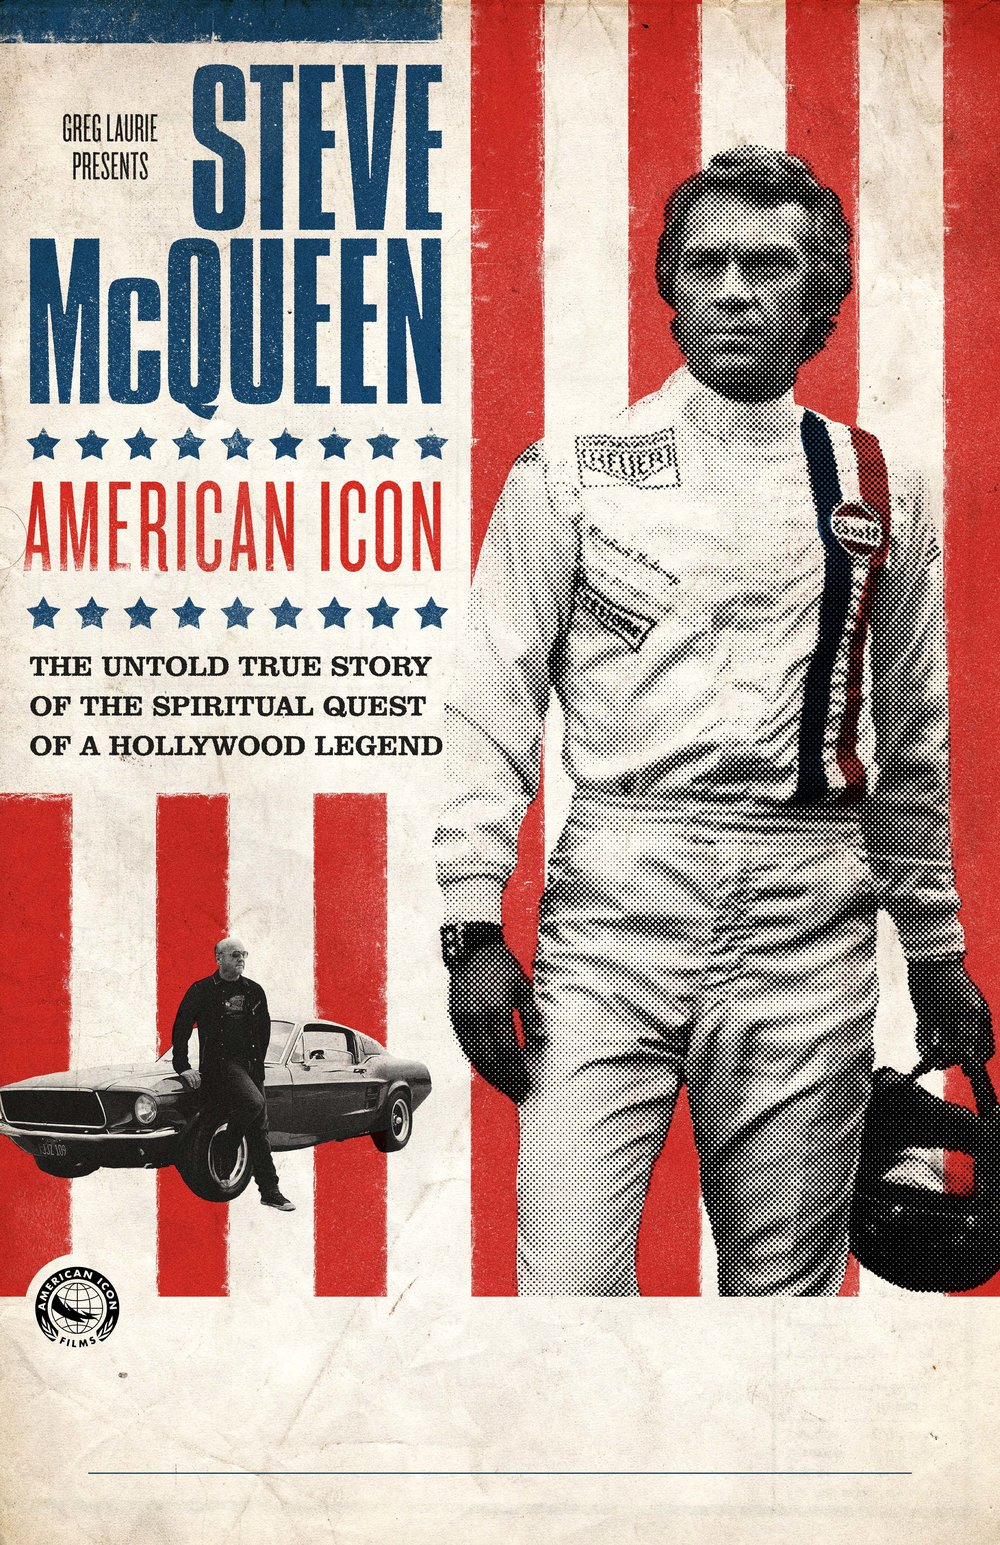 Steve McQueen: American Icon    Jon Erwin and Ben Smallbone   View More →